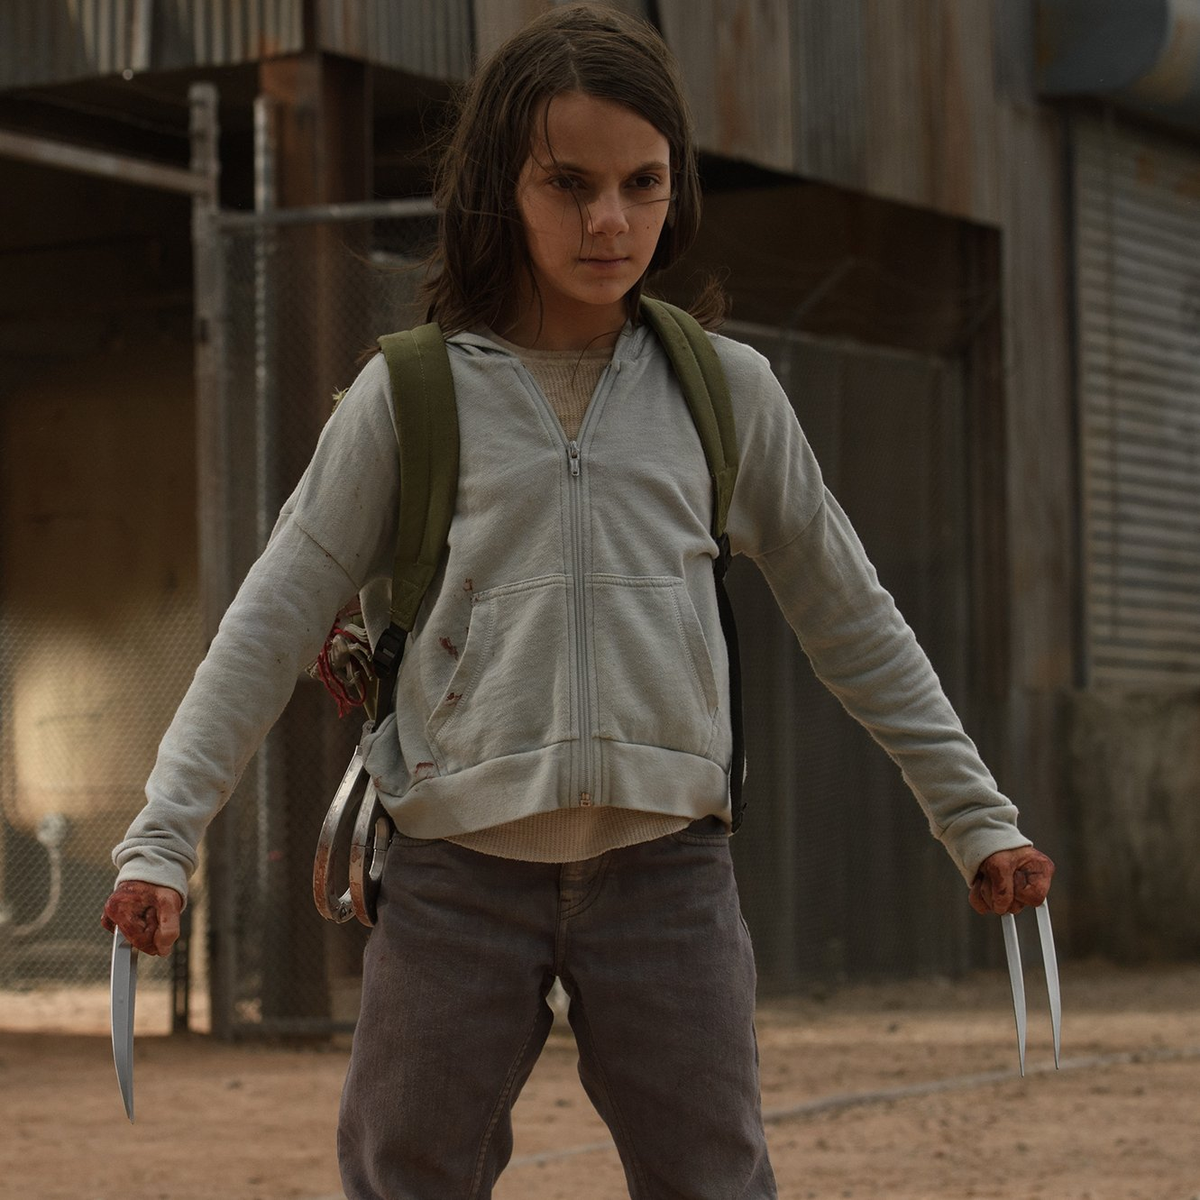 Dafne Keen says she would '100%' reprise her role as X-23 in the MCU  (via @comicbook) https://t.co/CAwka6SitM